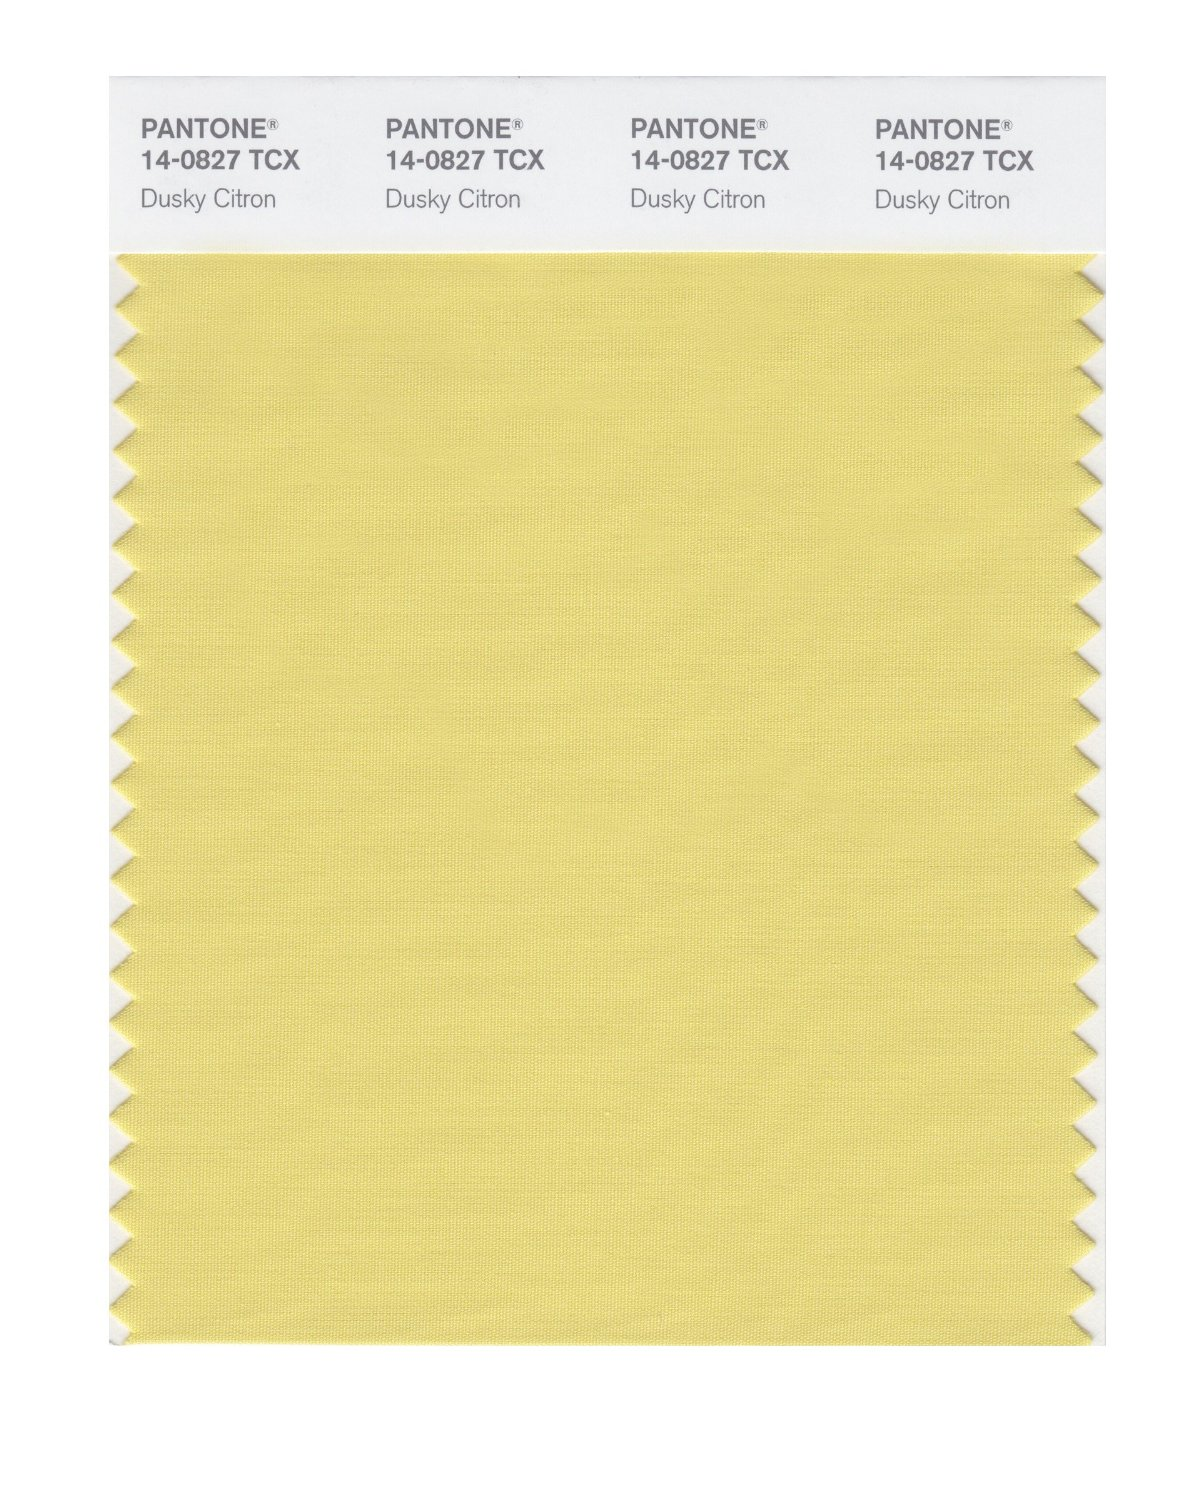 Pantone Smart Swatch 14-0827 Dusky Citron